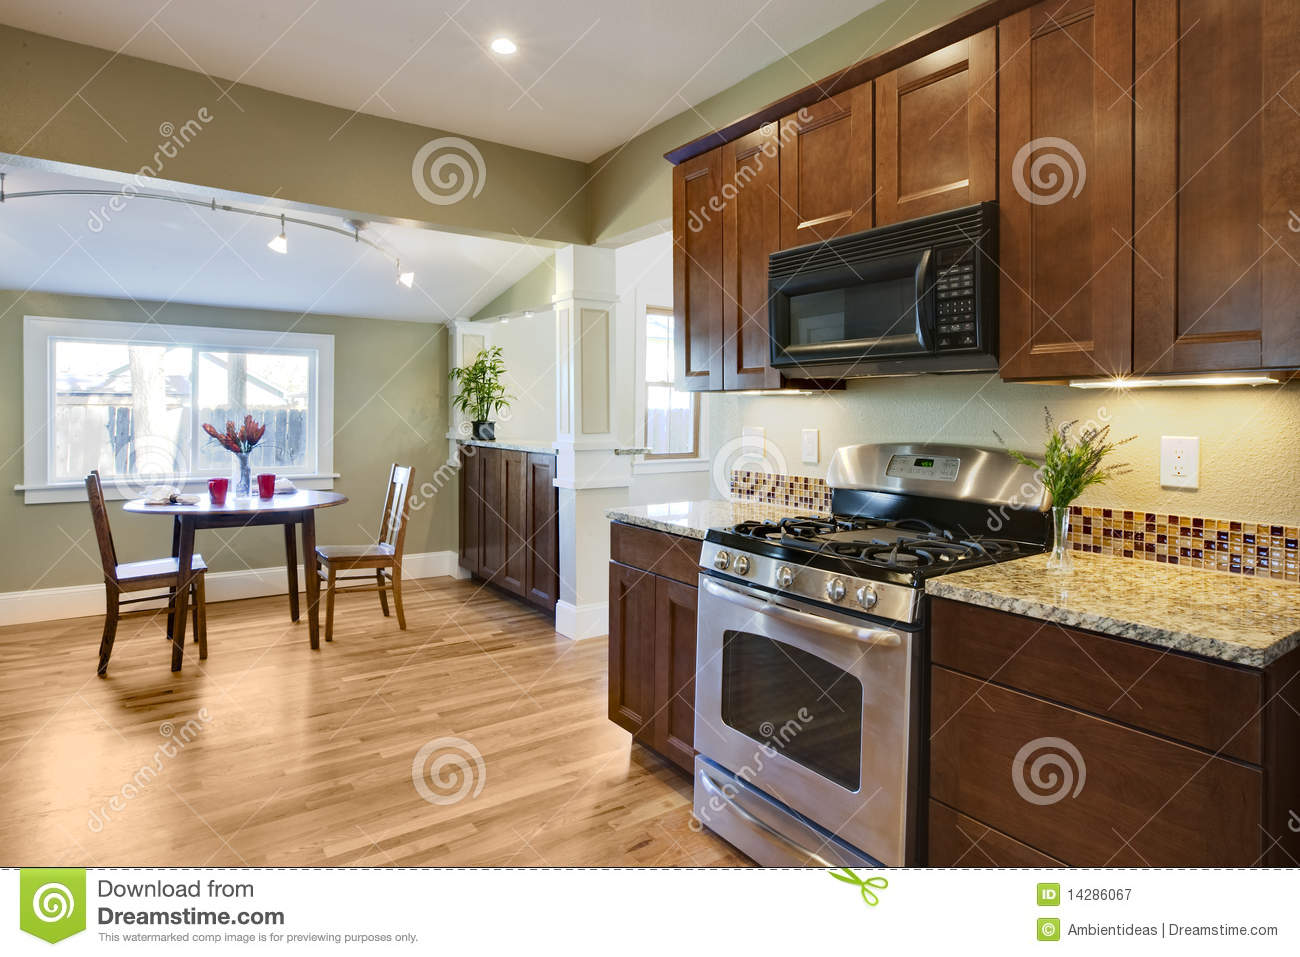 royalty free stock photography remodel kitchen wood flooring image wood floor kitchen Remodel kitchen with wood flooring